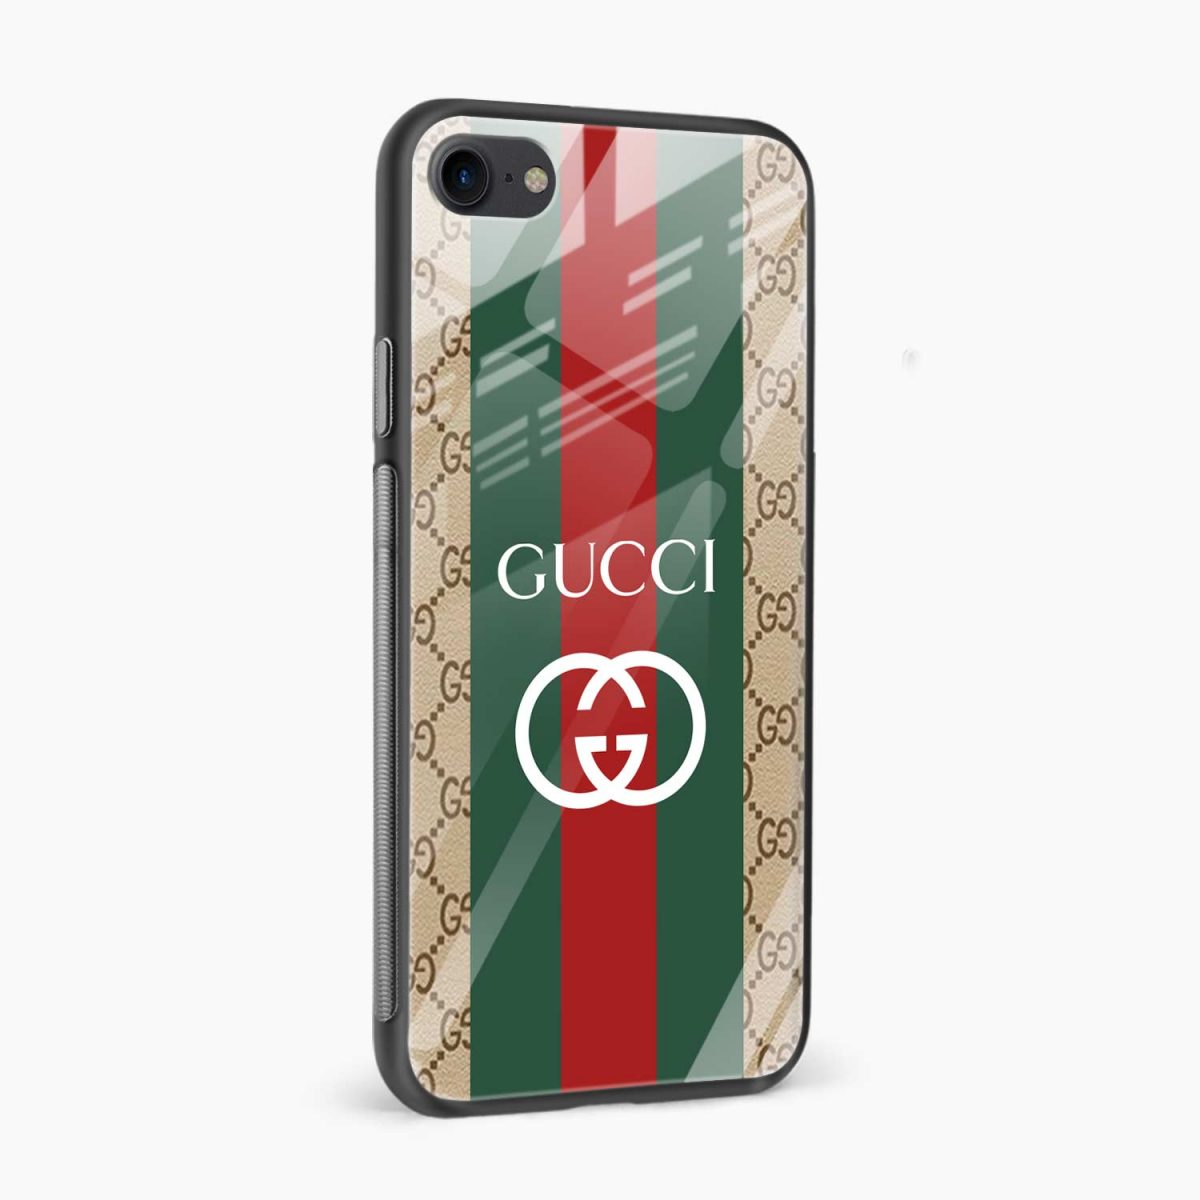 gucci strips pattern side view apple iphone 6 7 8 se back cover